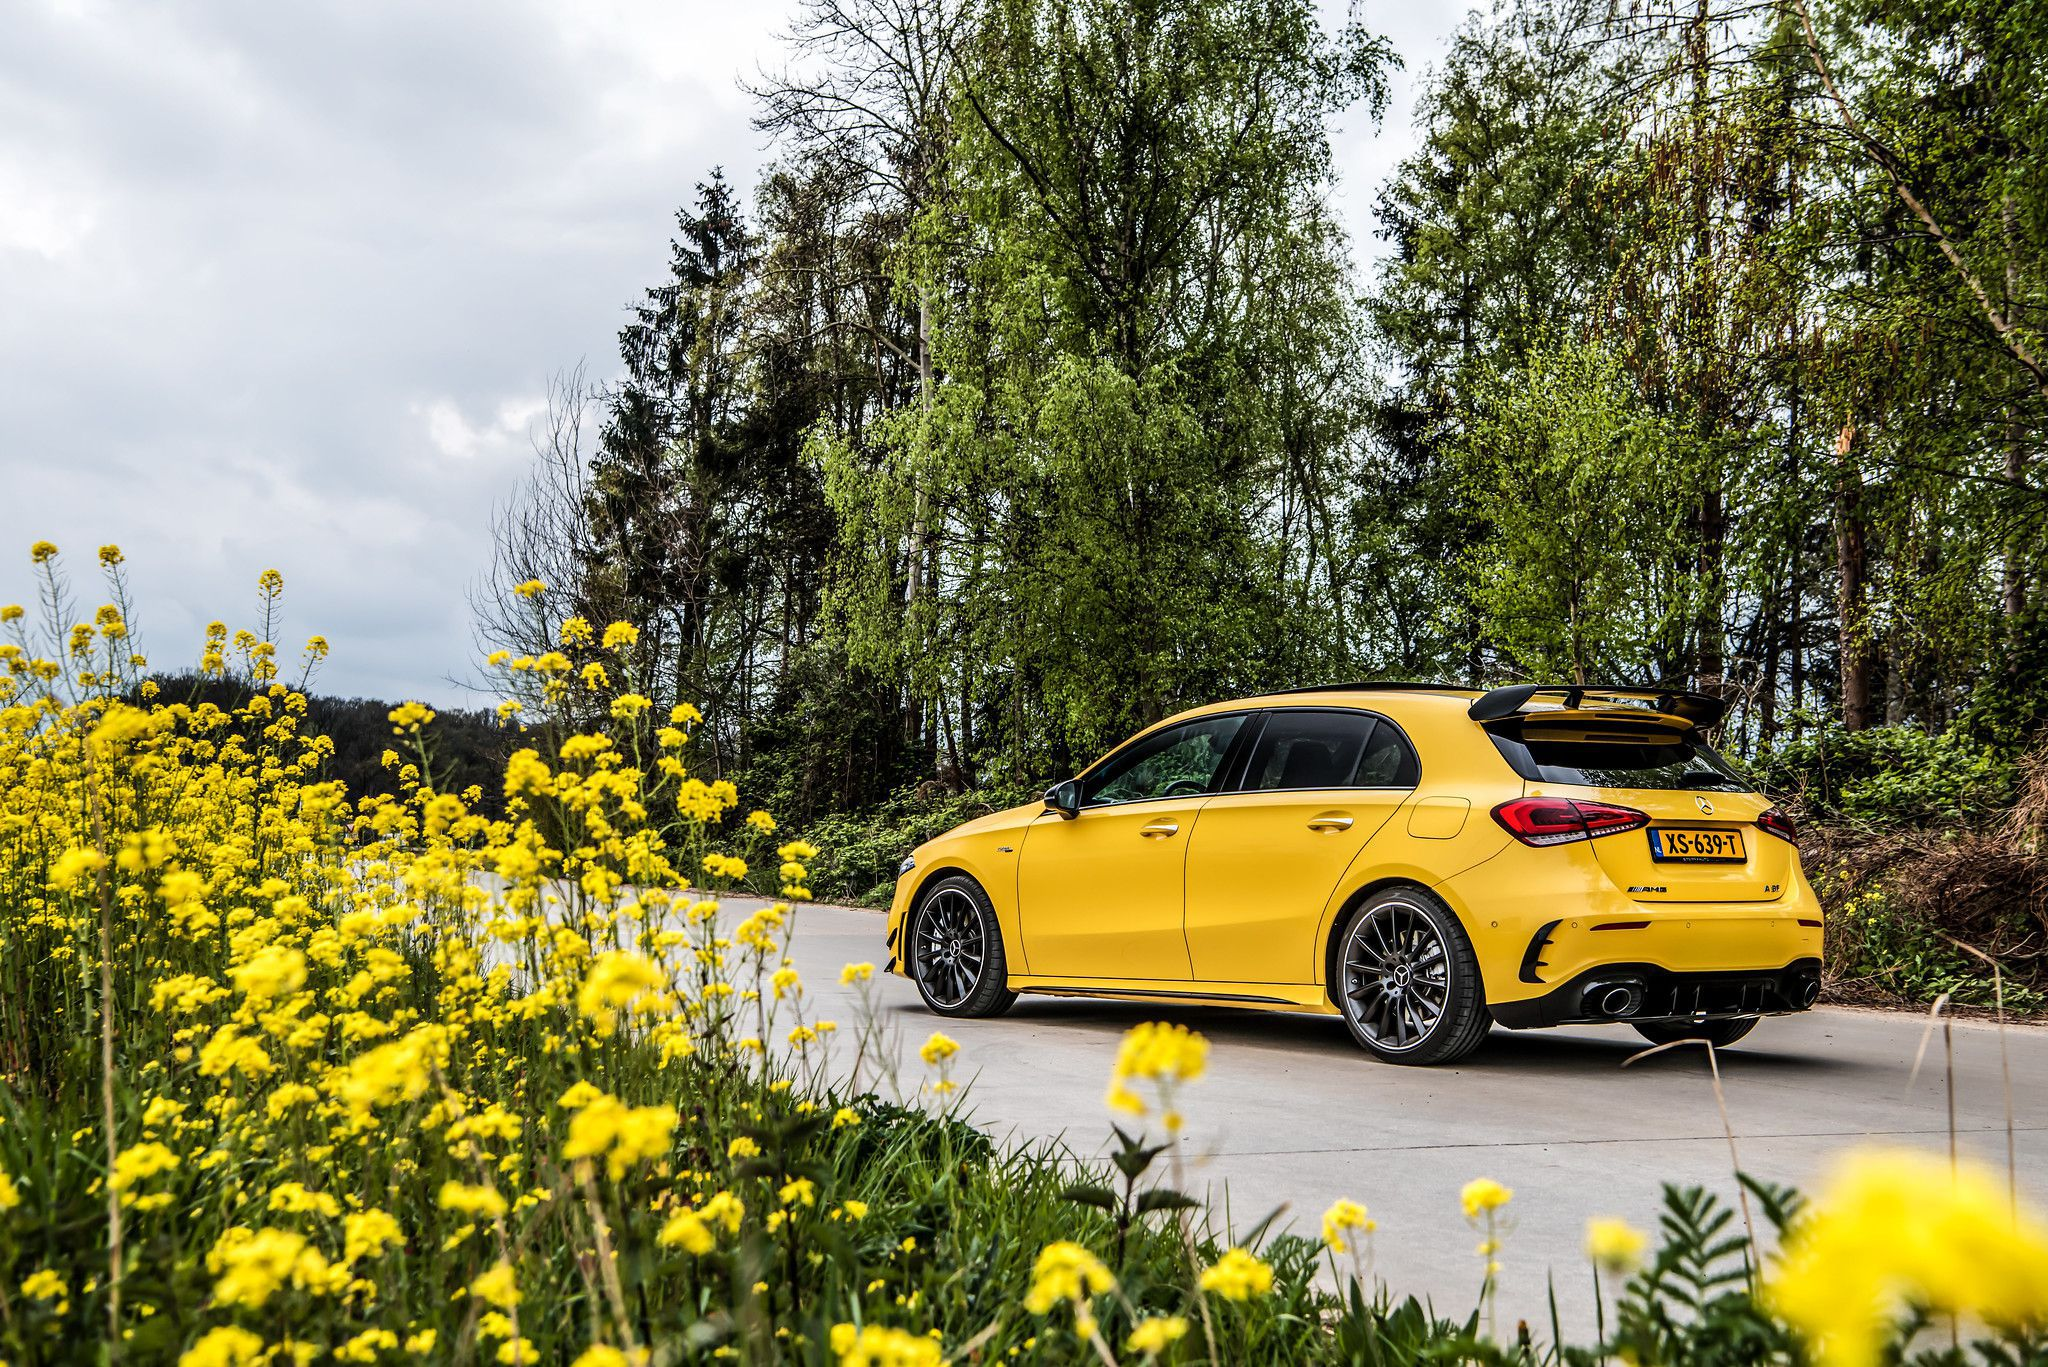 2019 Mercedes AMG A35 in yellow colour